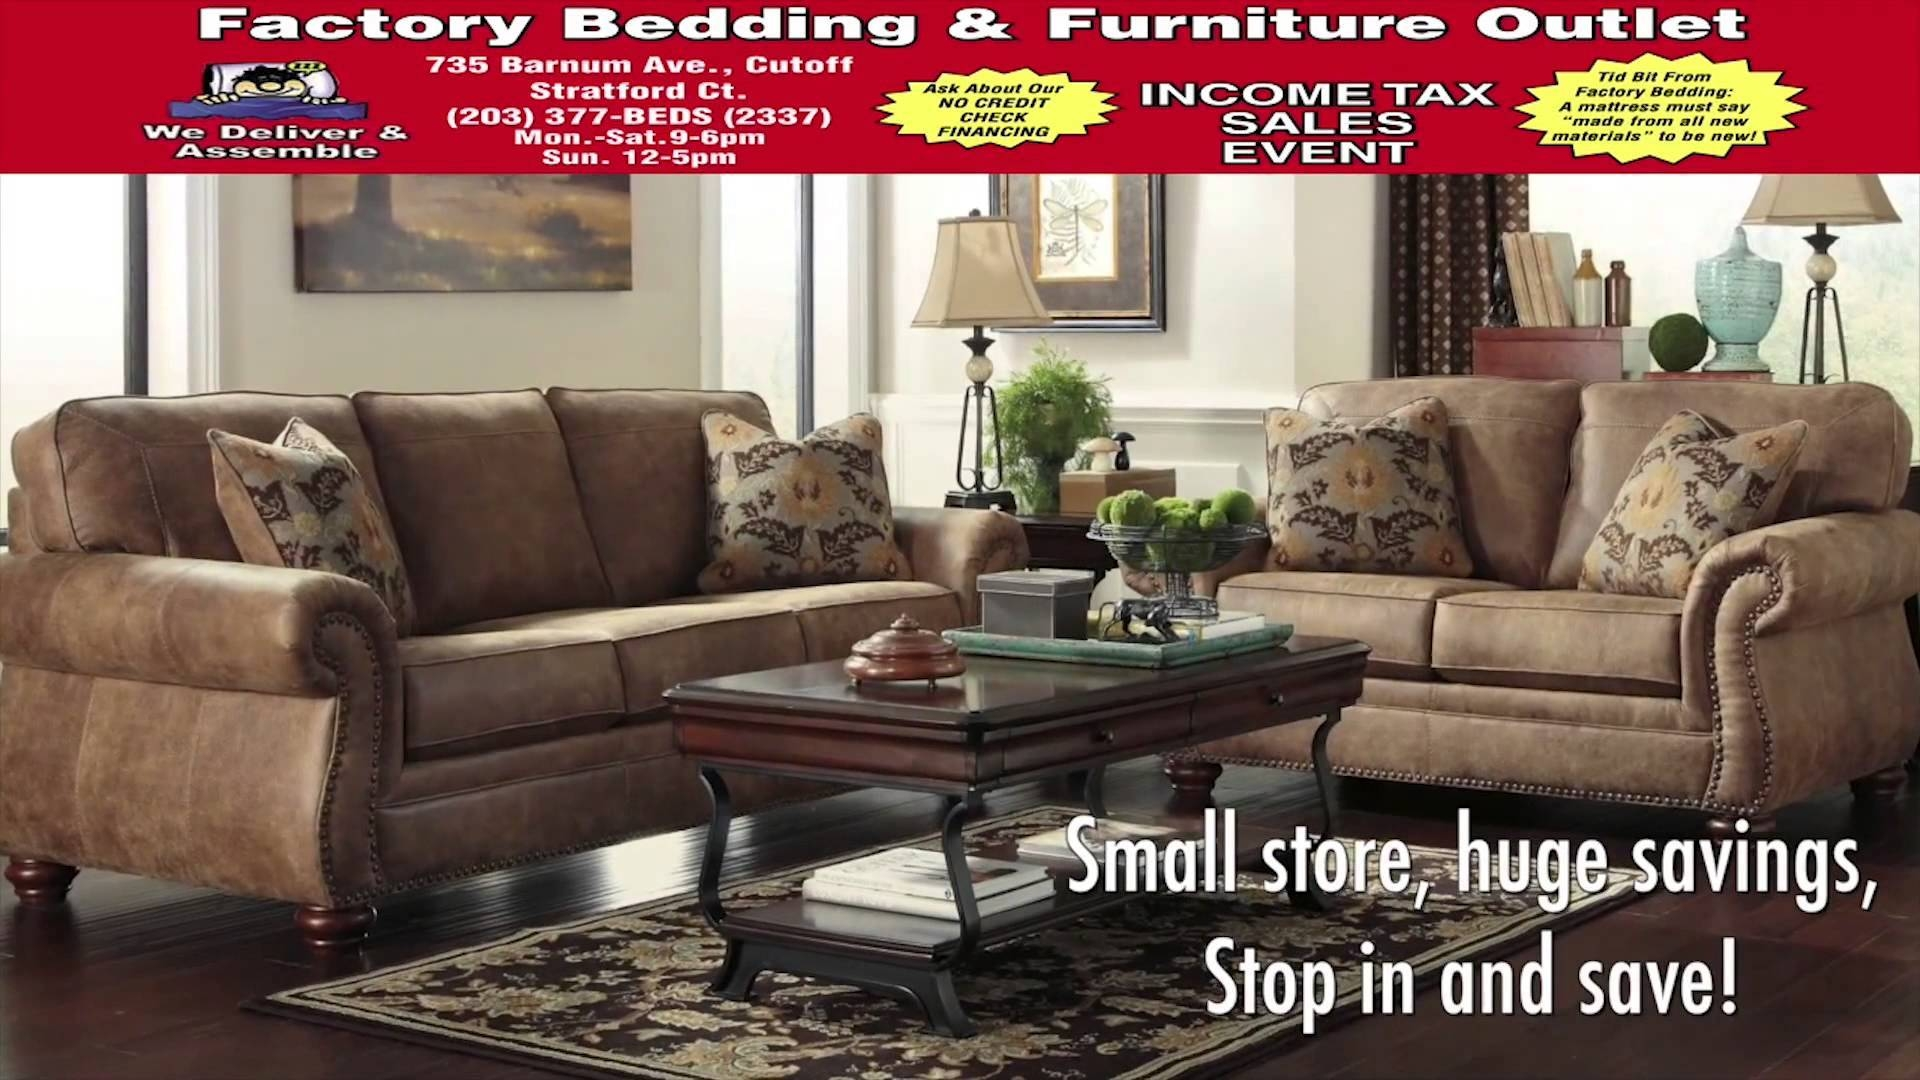 Factory Bedding And Furniture Outlet Stratford, Ct – Youtube Regarding Stratford Sofas (View 17 of 30)